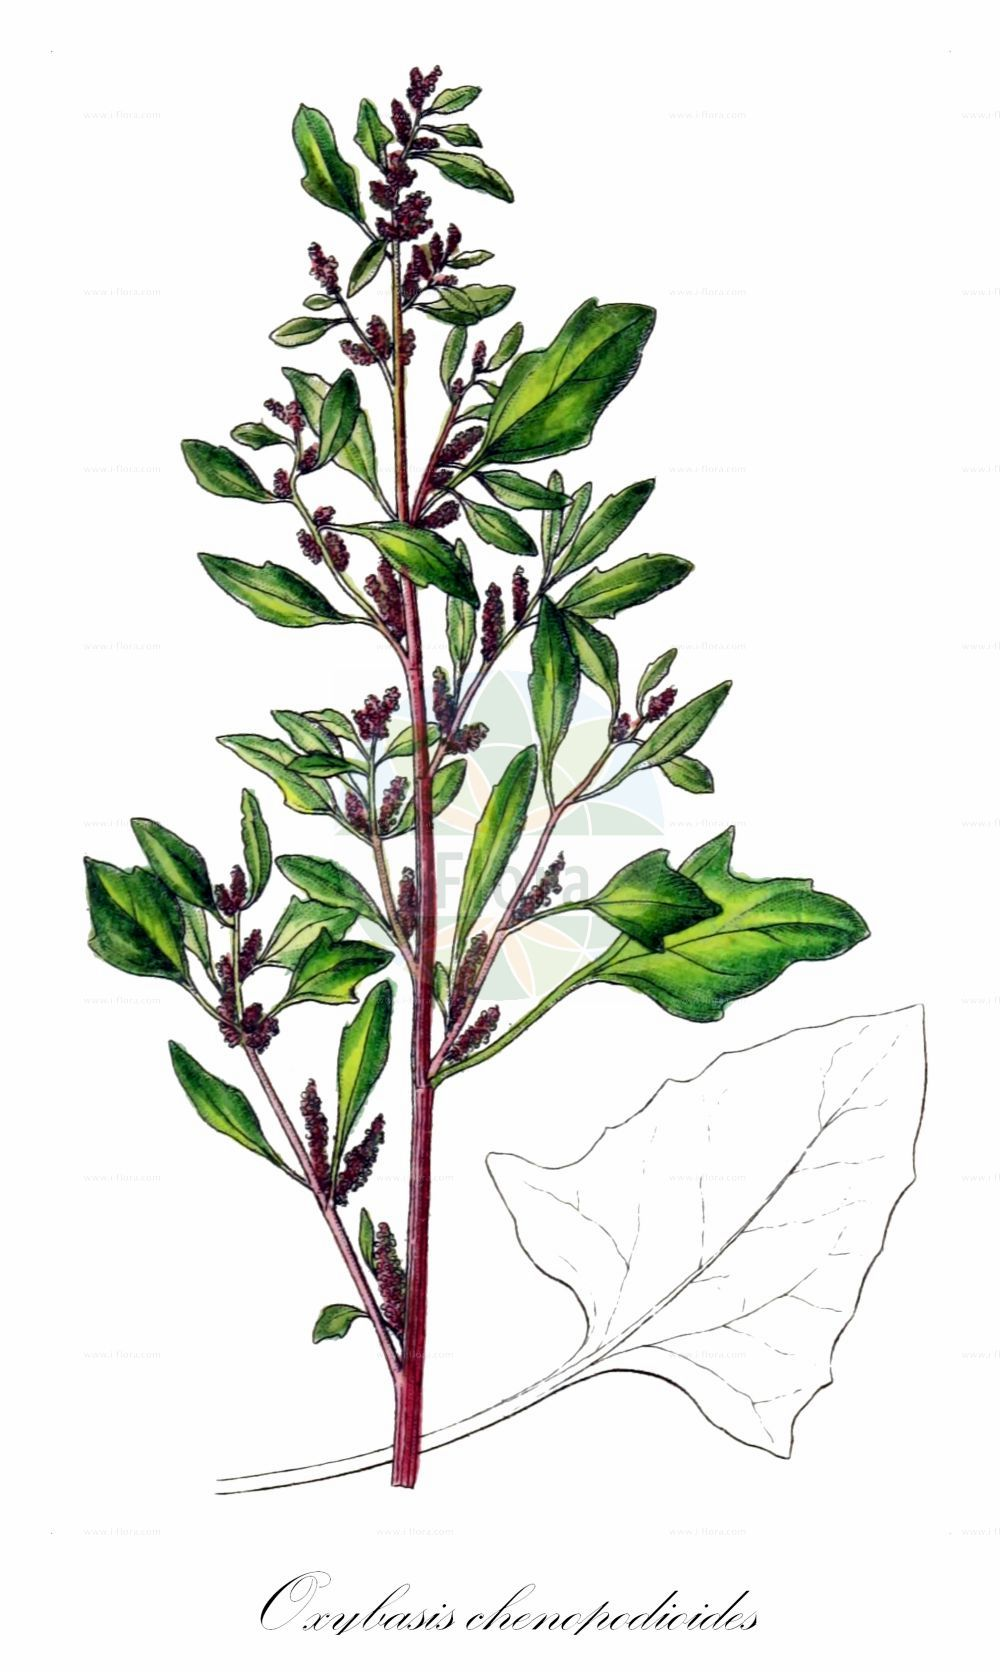 Historische Abbildung von Oxybasis chenopodioides (Dickblaettriger Gaensefuss - Saltmarsh Goosefoot). Das Bild zeigt Blatt, Bluete, Frucht und Same. ---- Historical Drawing of Oxybasis chenopodioides (Dickblaettriger Gaensefuss - Saltmarsh Goosefoot).The image is showing leaf, flower, fruit and seed.(Oxybasis chenopodioides,Dickblaettriger Gaensefuss,Saltmarsh Goosefoot,Blitum chenopodioides,Chenopodium botryodes,Chenopodium chenopodioides,Chenopodium crassifolium,,Dickblatt-Gaensefuss,Low Goosefoot,Sea Goosefoot,Oxybasis,Amaranthaceae,Fuchsschwanzgewaechse,Pigweed family,Blatt,Bluete,Frucht,Same,leaf,flower,fruit,seed,Sturm (1796f))